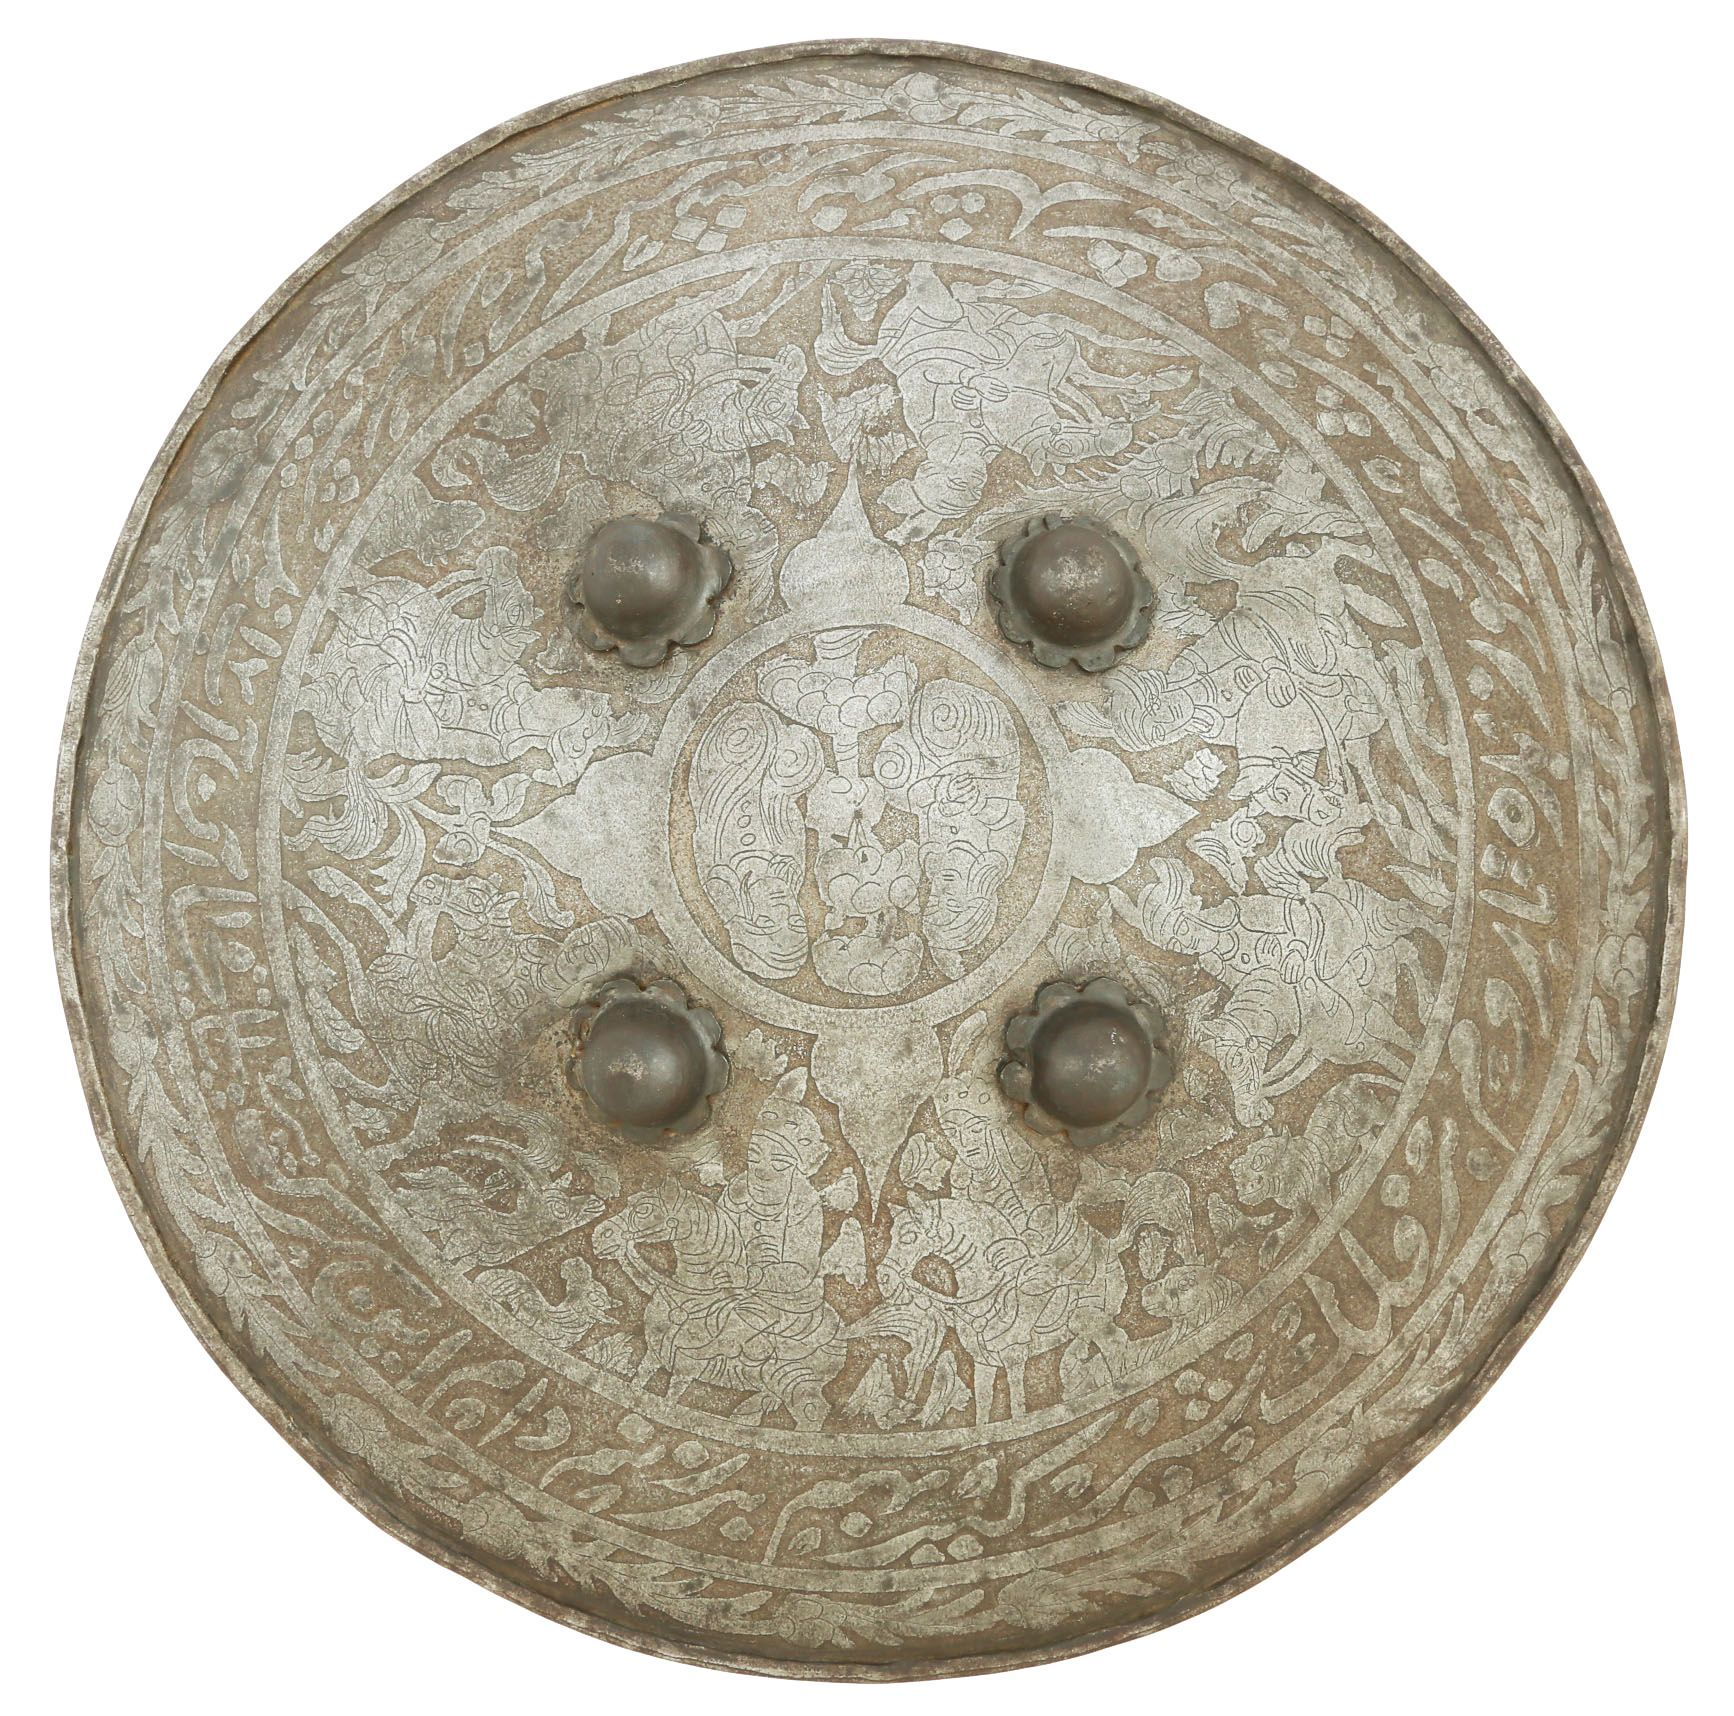 Indopersian Iron Shield - Product